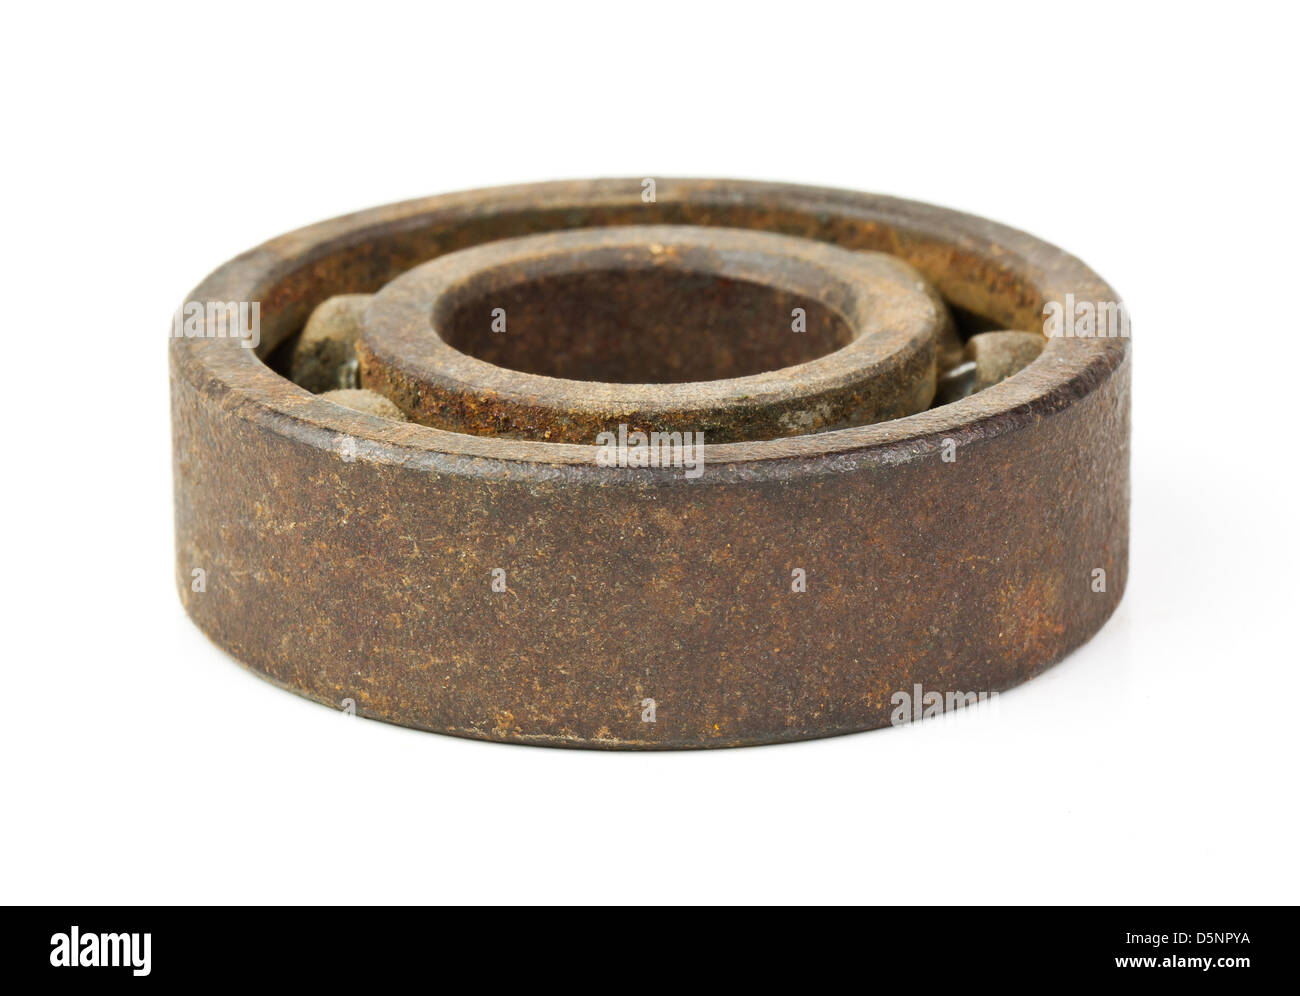 Rusted bearing isolated on white background - Stock Image